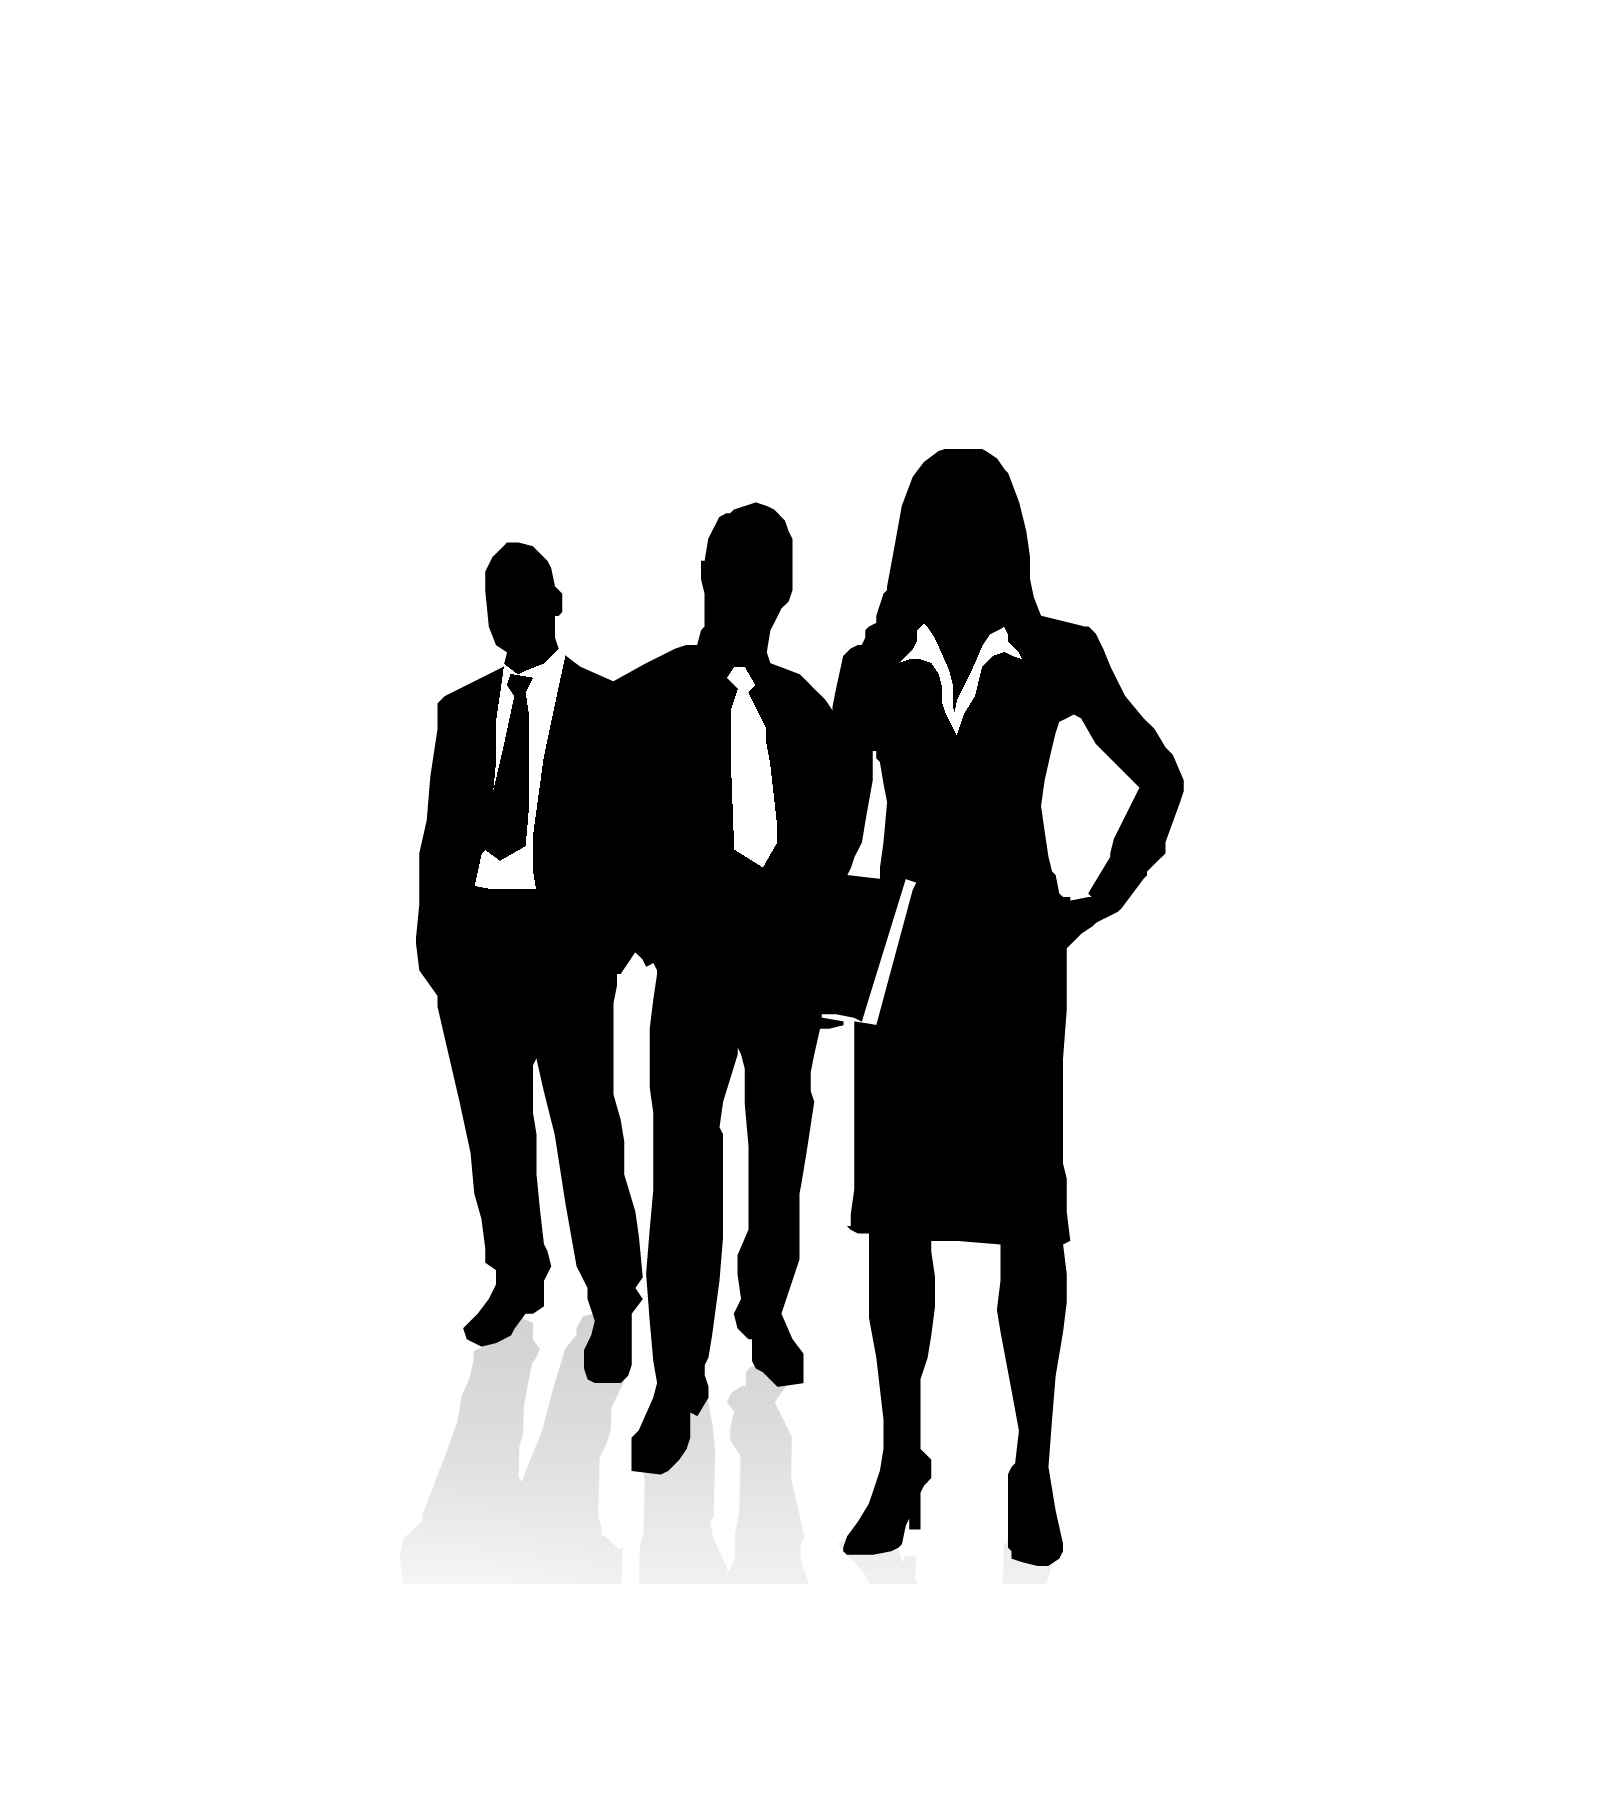 Business Person Silhouette   Clipart Panda   Free Clipart Images